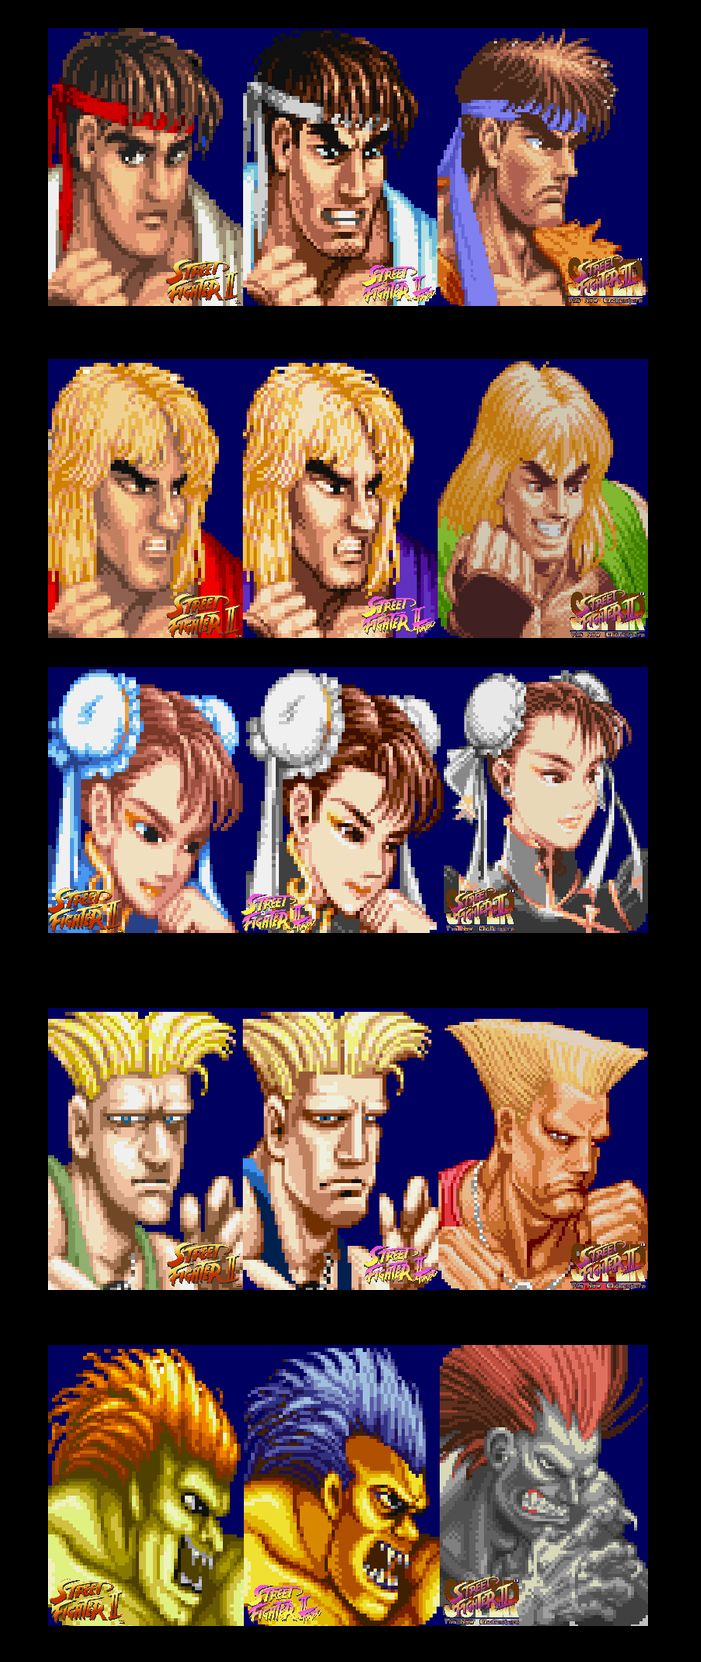 Street Fighter 2 Character Portrait Evolutions From Ww To Turbo To